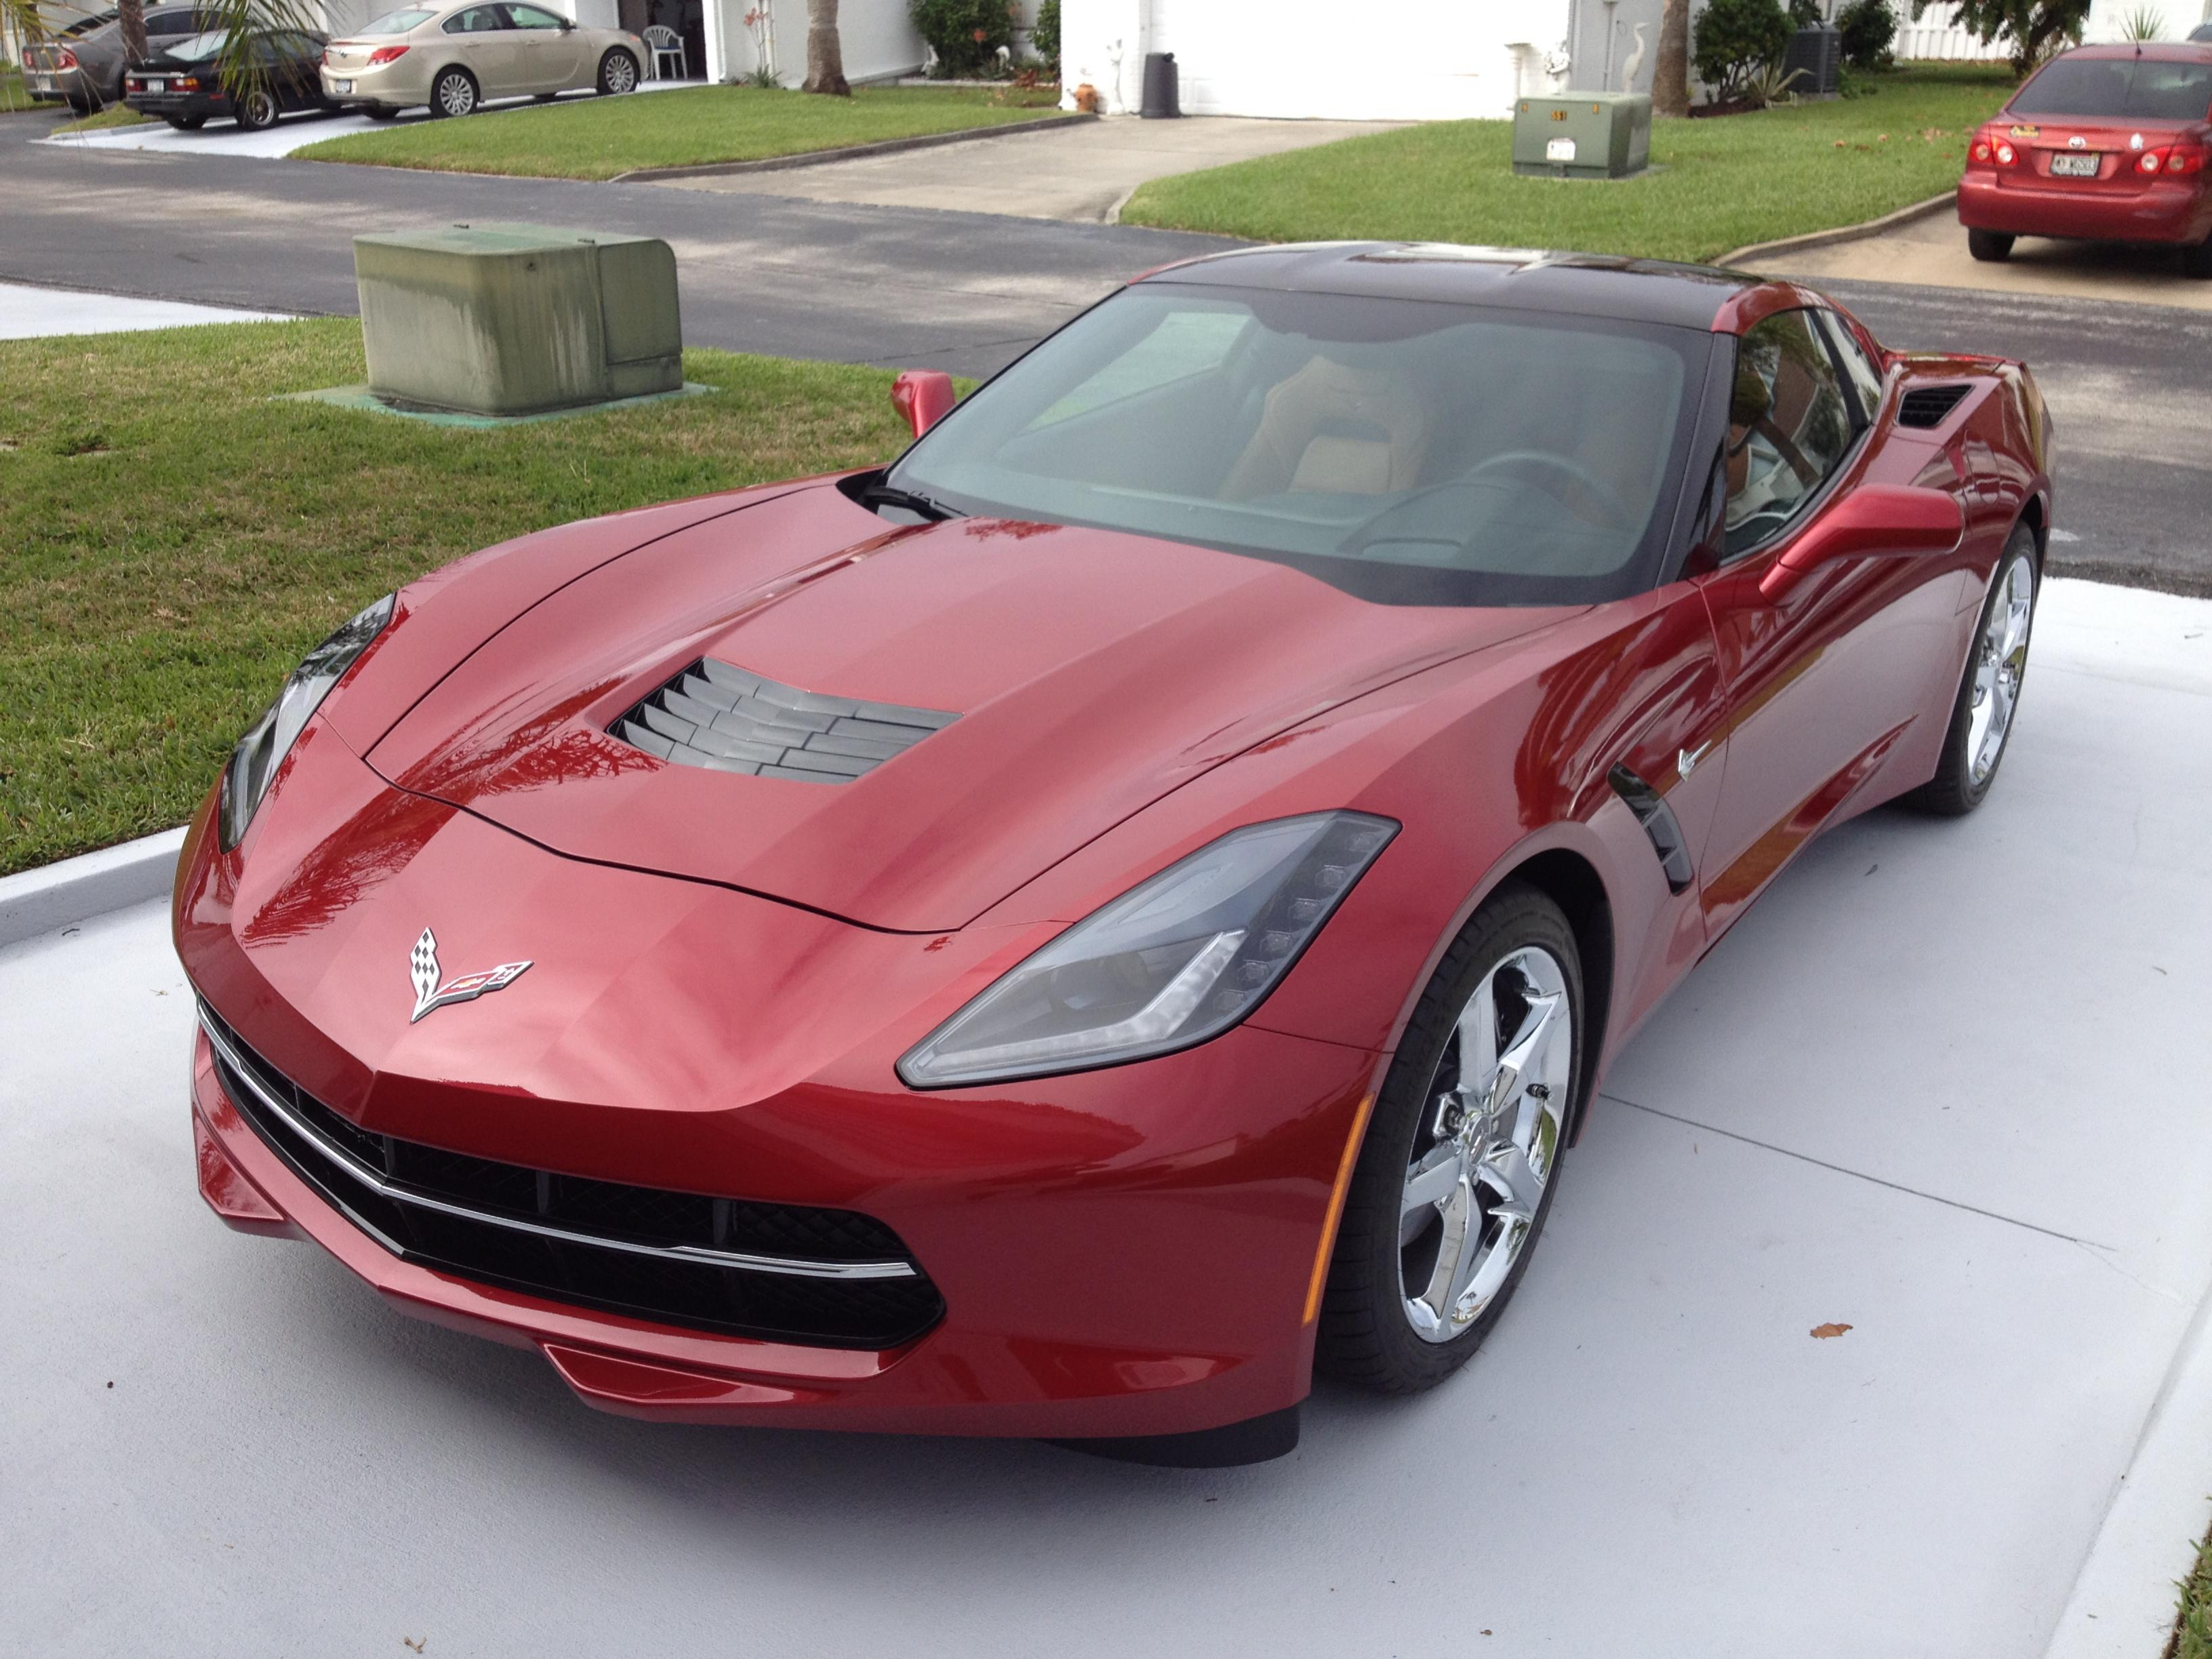 The Official Crystal Red Stingray Corvette Photo Thread